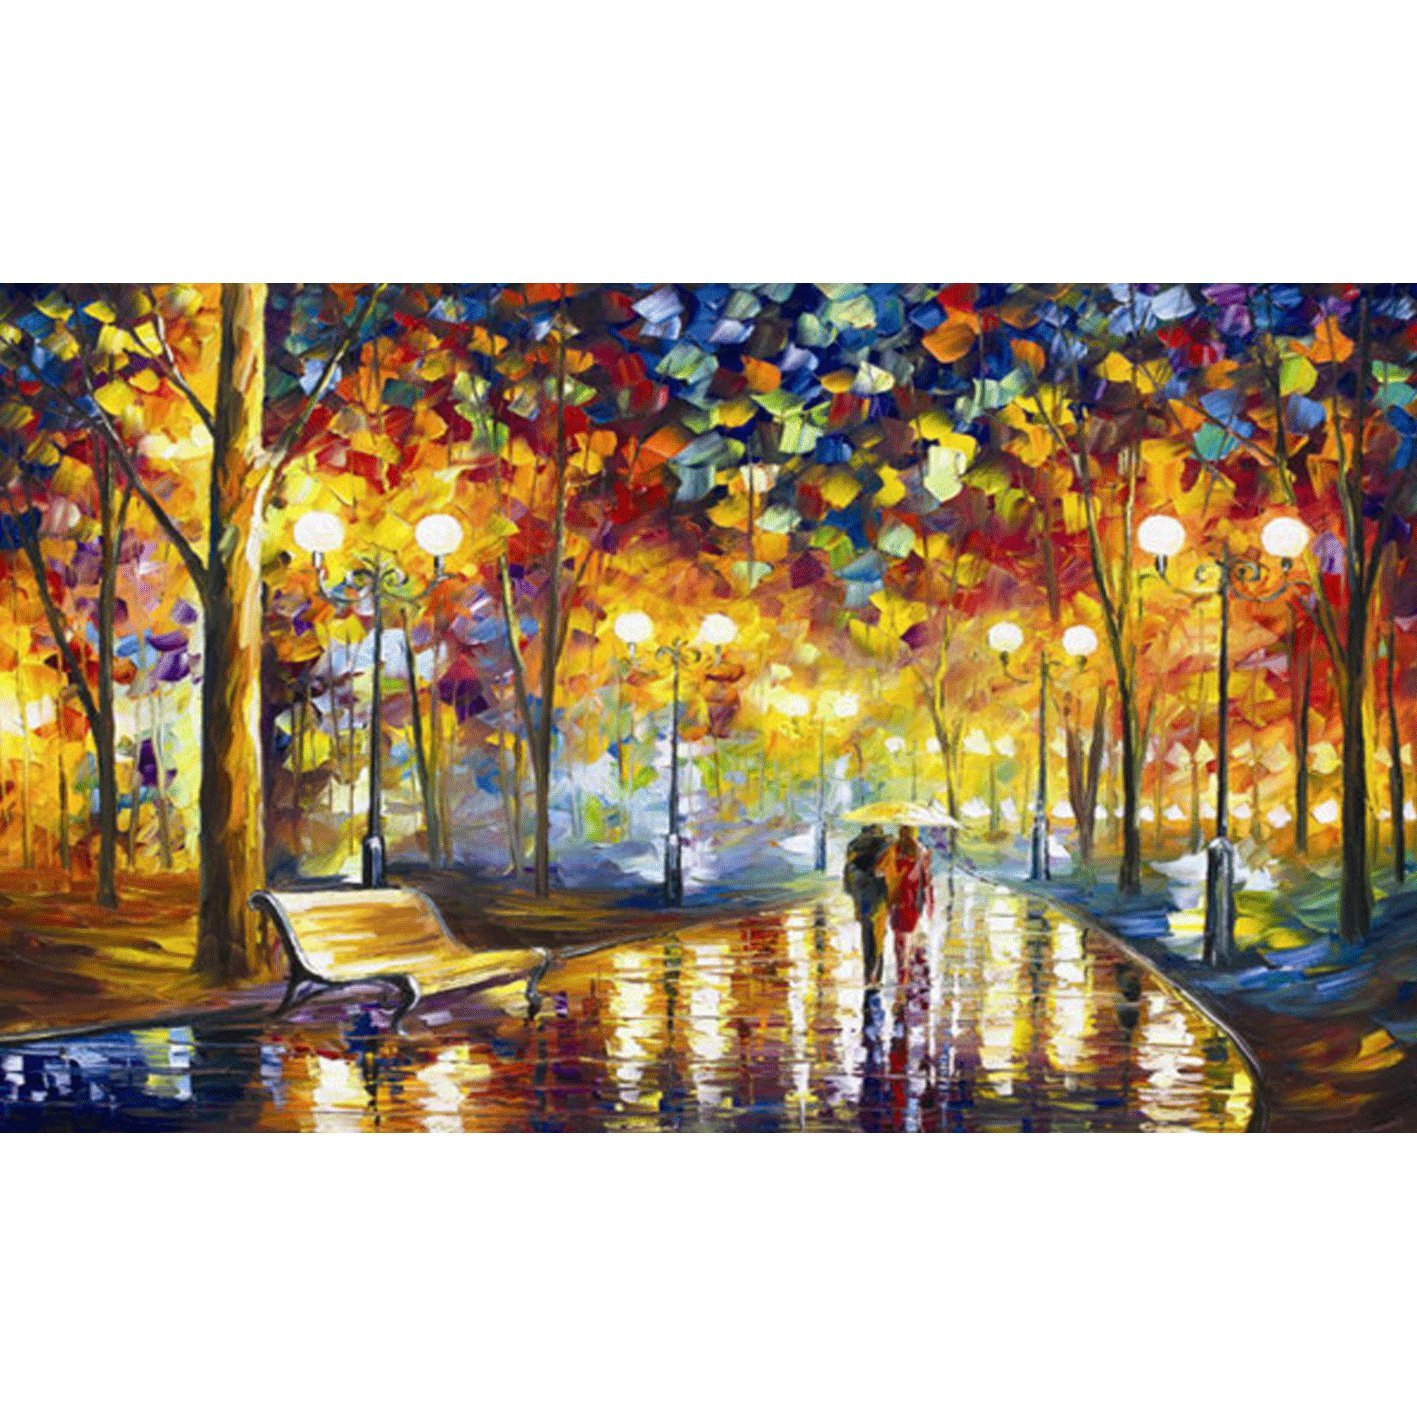 Kisstaker DIY 5D Diamond Sticker Cross Stitch Painting Kits Arts Crafts Rainy Night 42x50cm(16.5x19.5